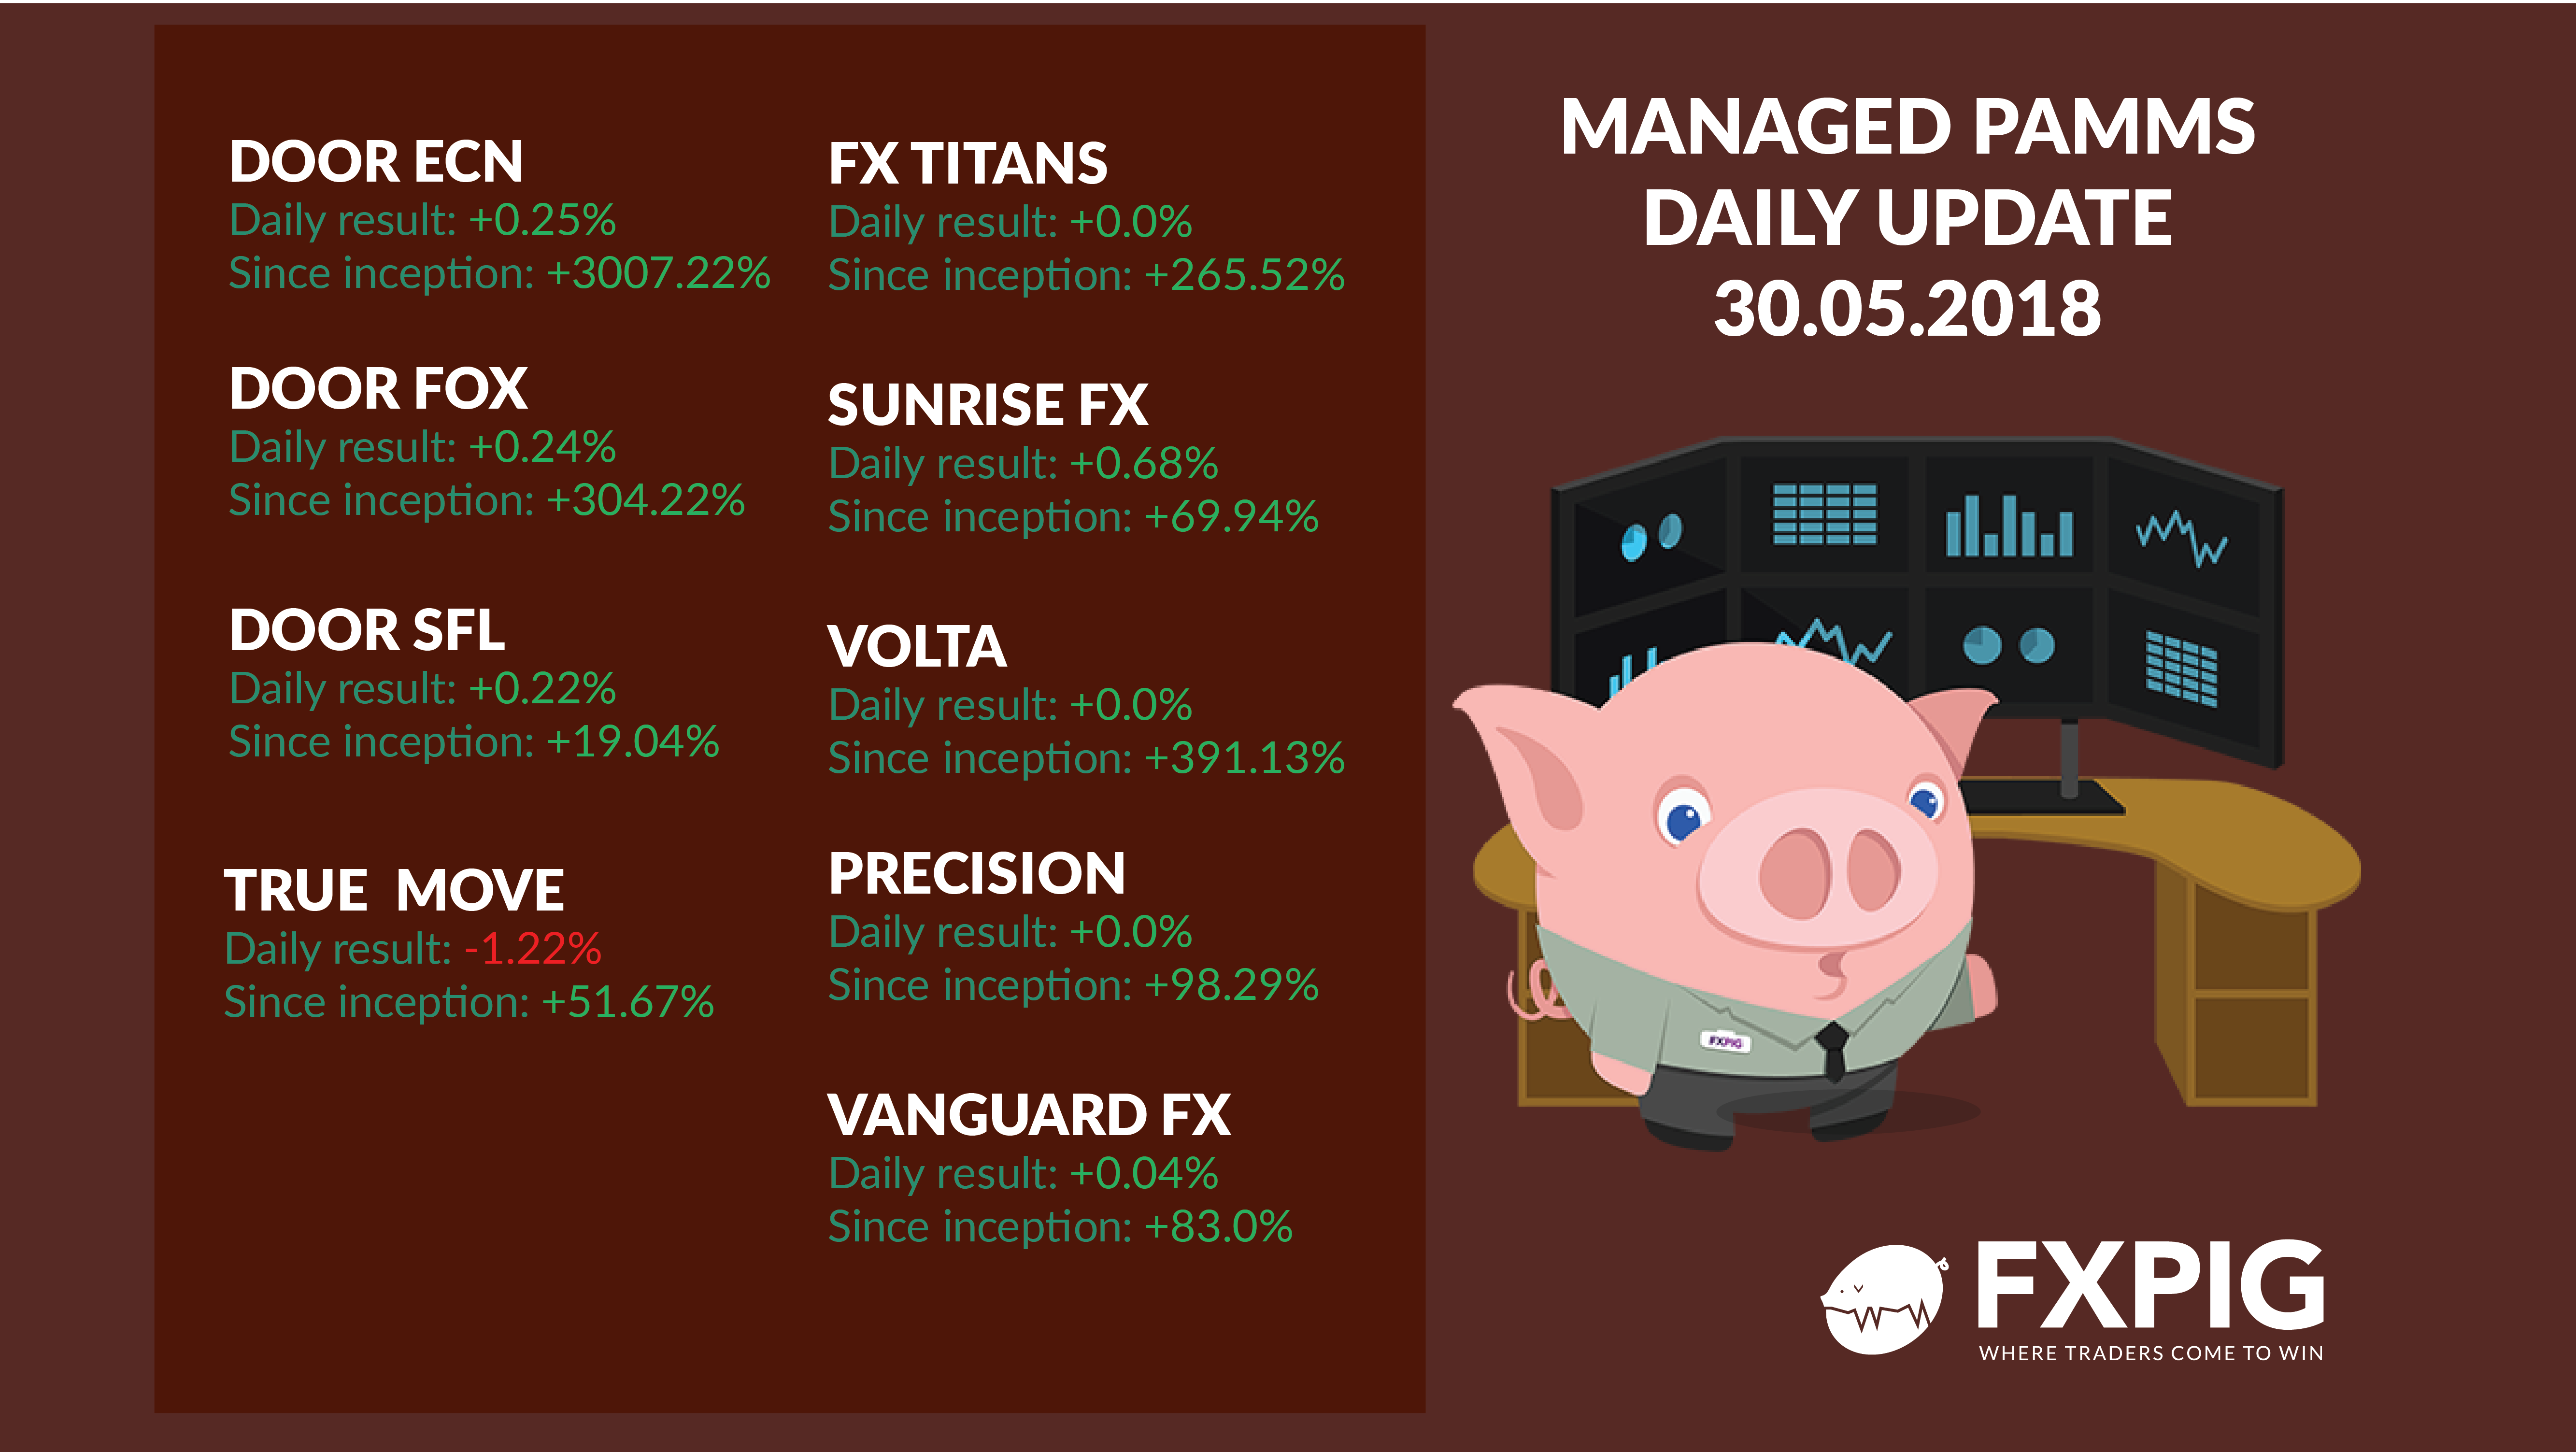 FOREX_managed-daily-accounts3005_FXPIG